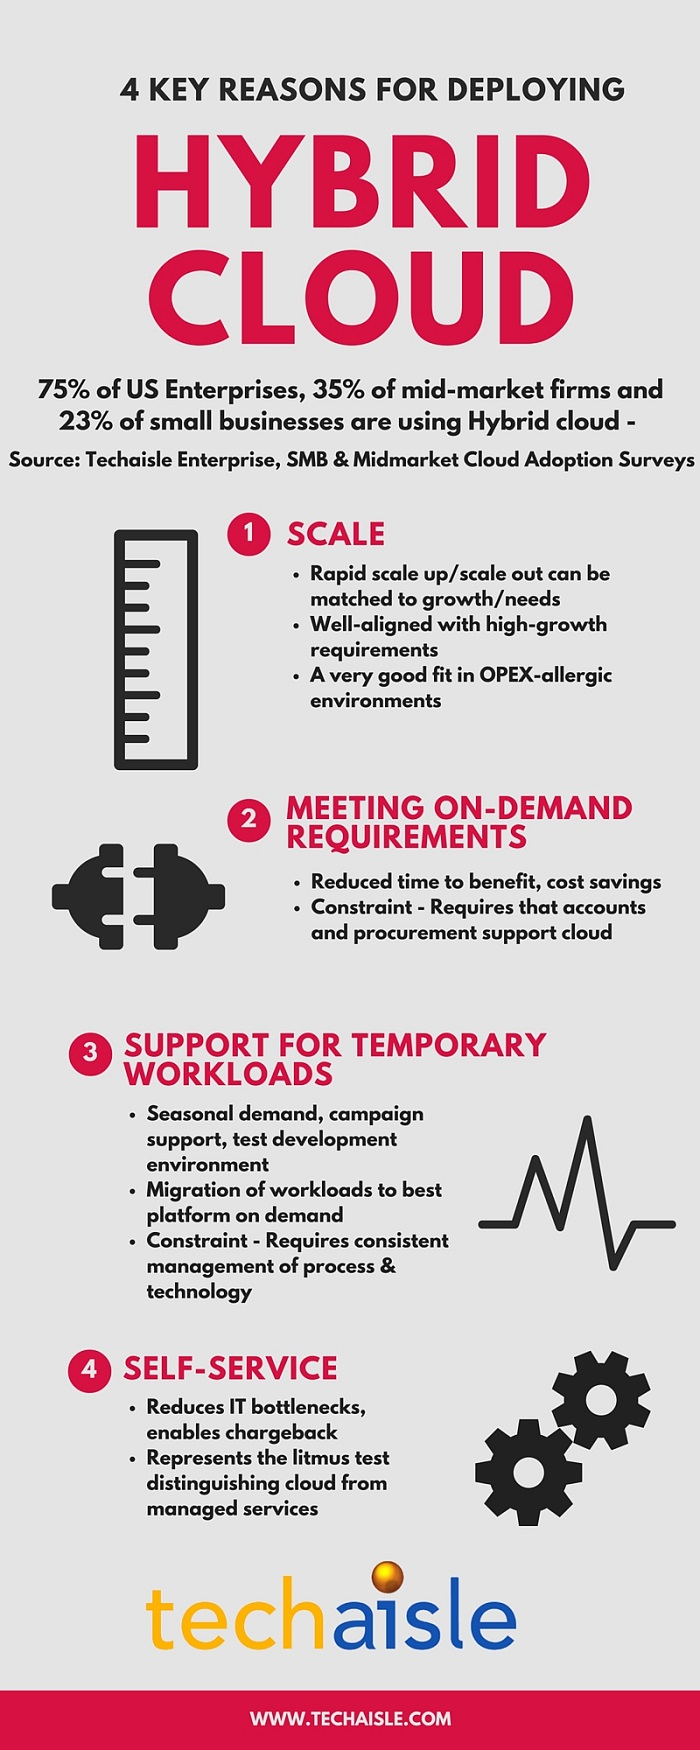 techaisle infographic 4 reasons for deploying hybrid cloud low res